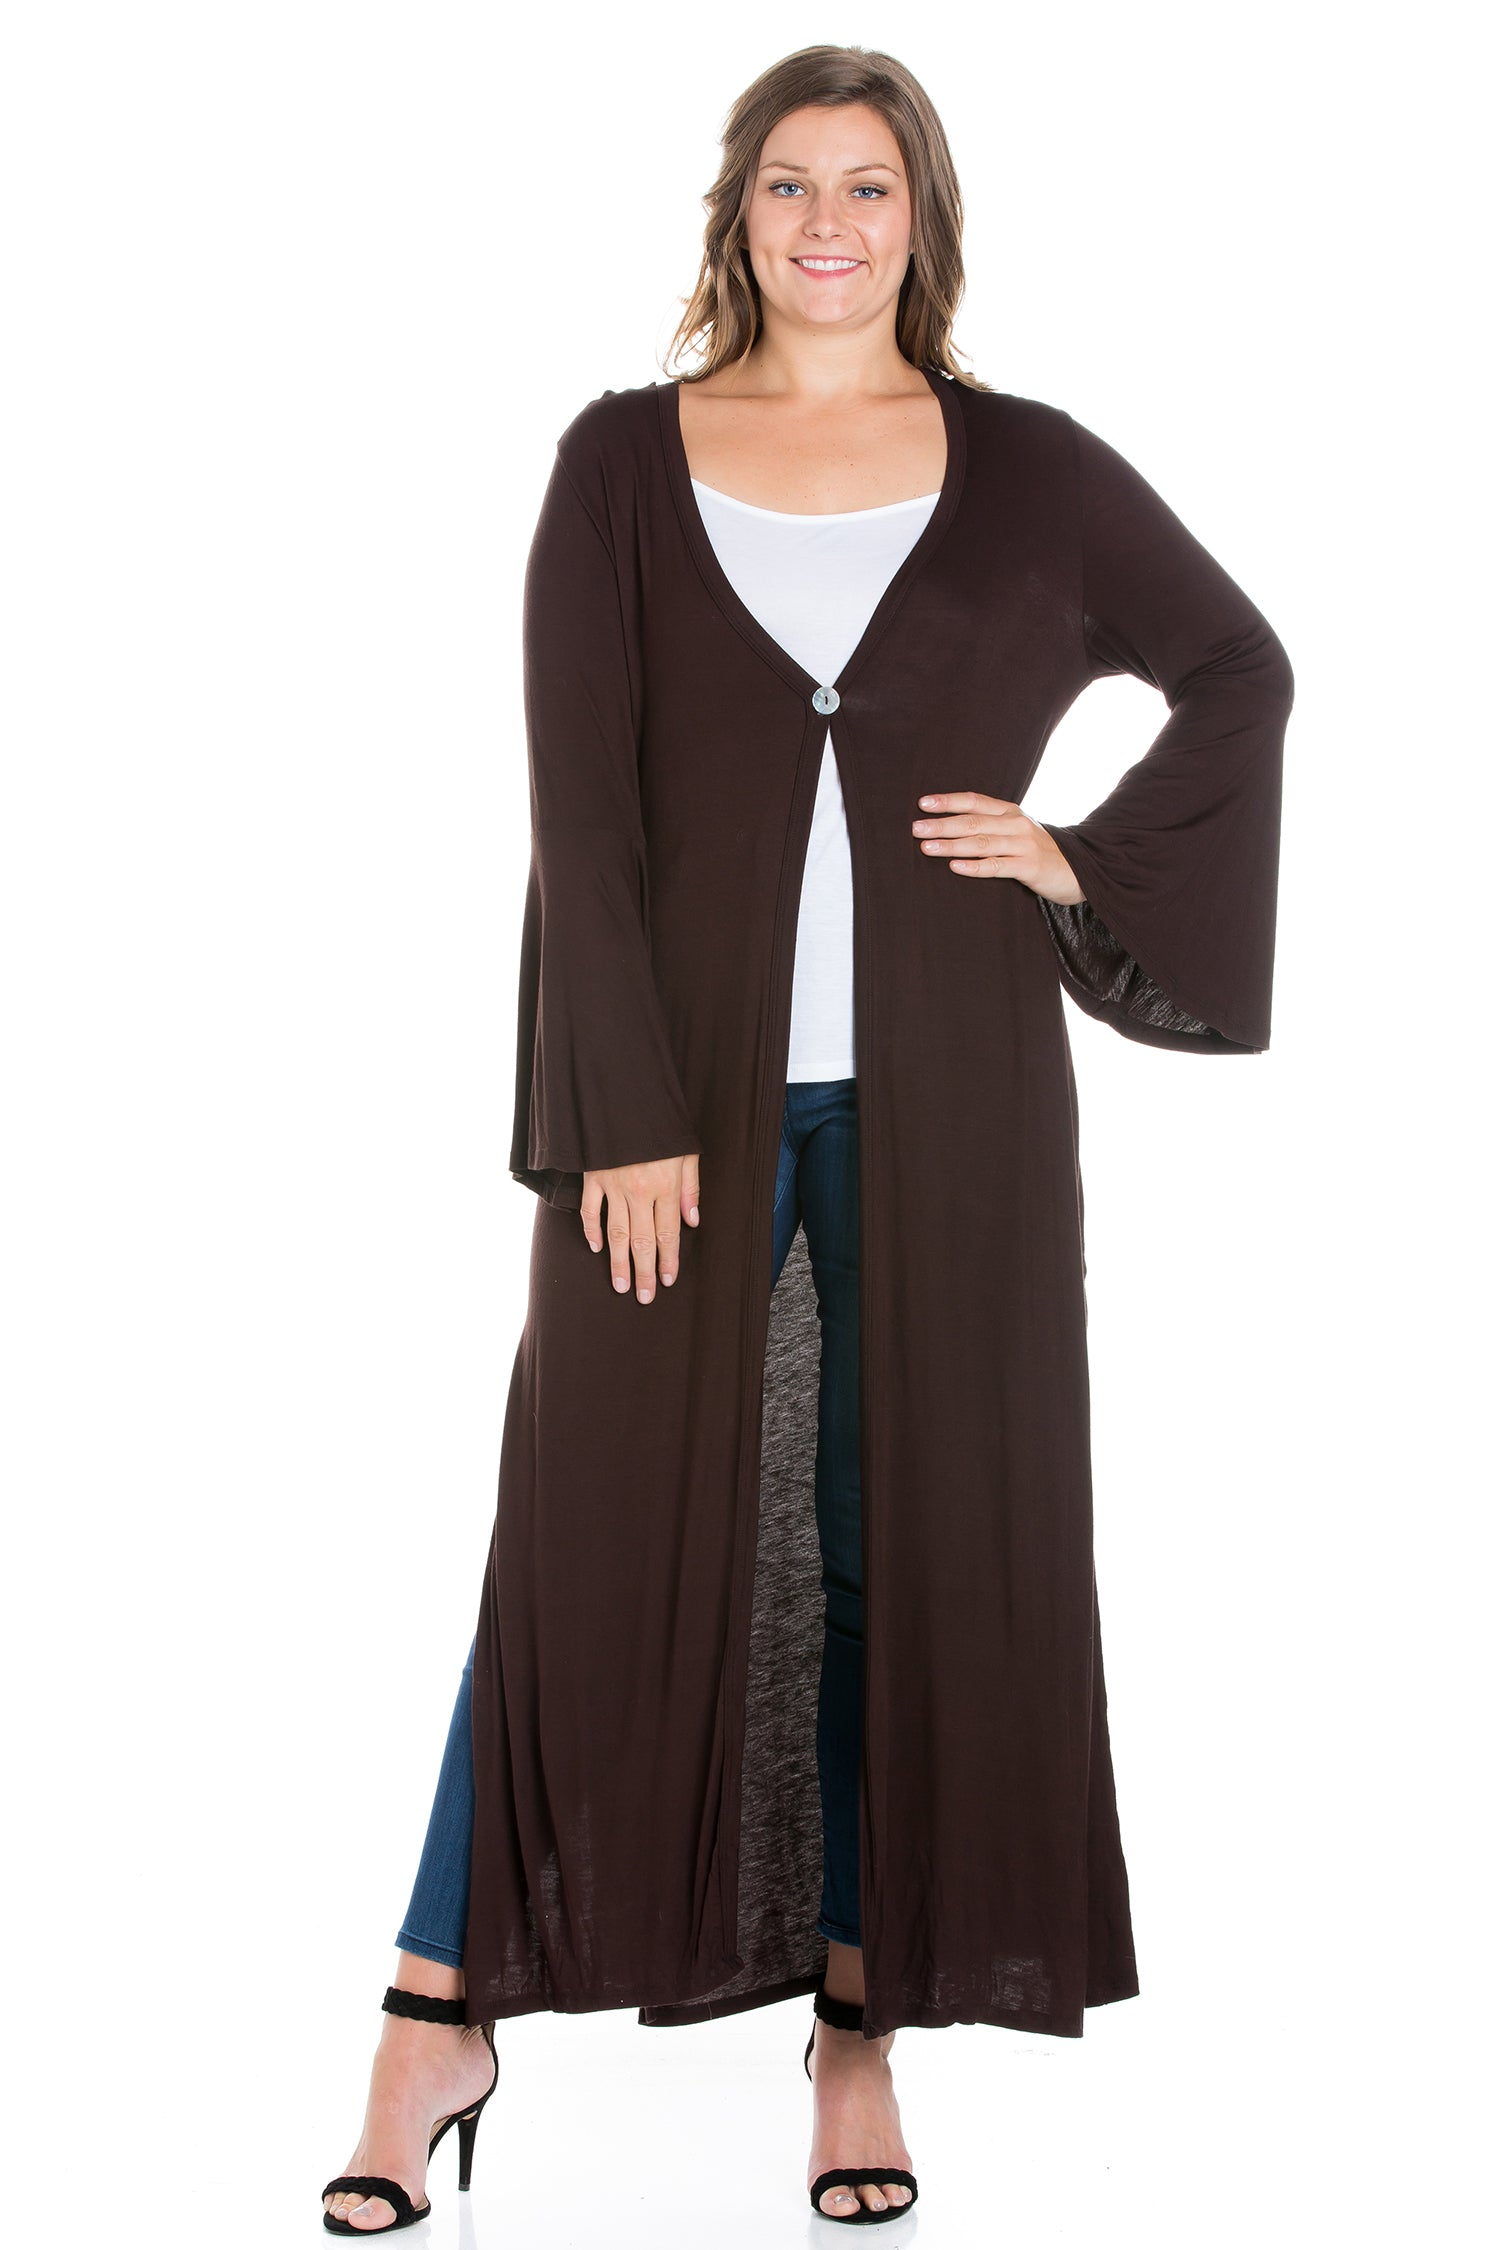 24seven Comfort Apparel Bell Sleeve Maxi Length Plus Size Cardigan Duster-SHRUGS-24Seven Comfort Apparel-BROWN-1X-24/7 Comfort Apparel